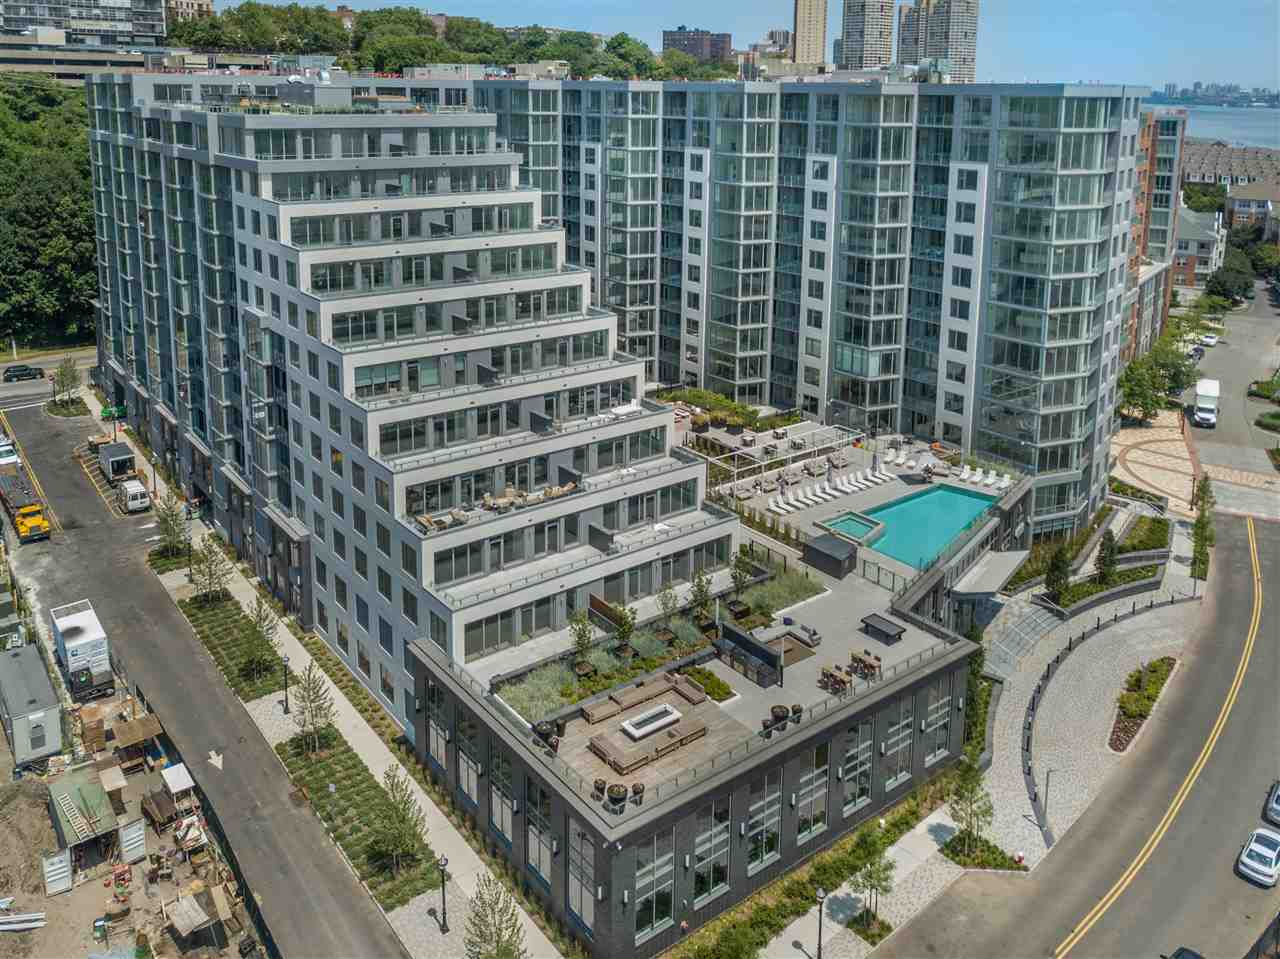 A 20 year tax abatement program on this new construction of 278 residences by K Hovnanian makes this a winner. Come and see exceptional luxurious waterfront living at 9 on The Hudson that are thoughtfully designed with quality crafted details and spacious open floor plans. Home features include 2bed 2 bath+den, floor-to-ceiling over-sized windows, beautiful white oak flooring throughout, Gourmet chefs kitchen with custom Pedini cabinetry, Aspen Quartz counter tops, Bosch and Thermadore appliances, bathrooms with Carrera marble, quartz vanity counter tops and Moen rain shower heads. Exceptional resort style amenities include a 24/7 concierge, a stunning infinity pool with a lounge and BBQ area, 2 floors of state of the art fitness center, golf simulator and a sprawling roof top lounge with a breathtaking panoramic view of the Manhattan skyline. Your ideal next home.